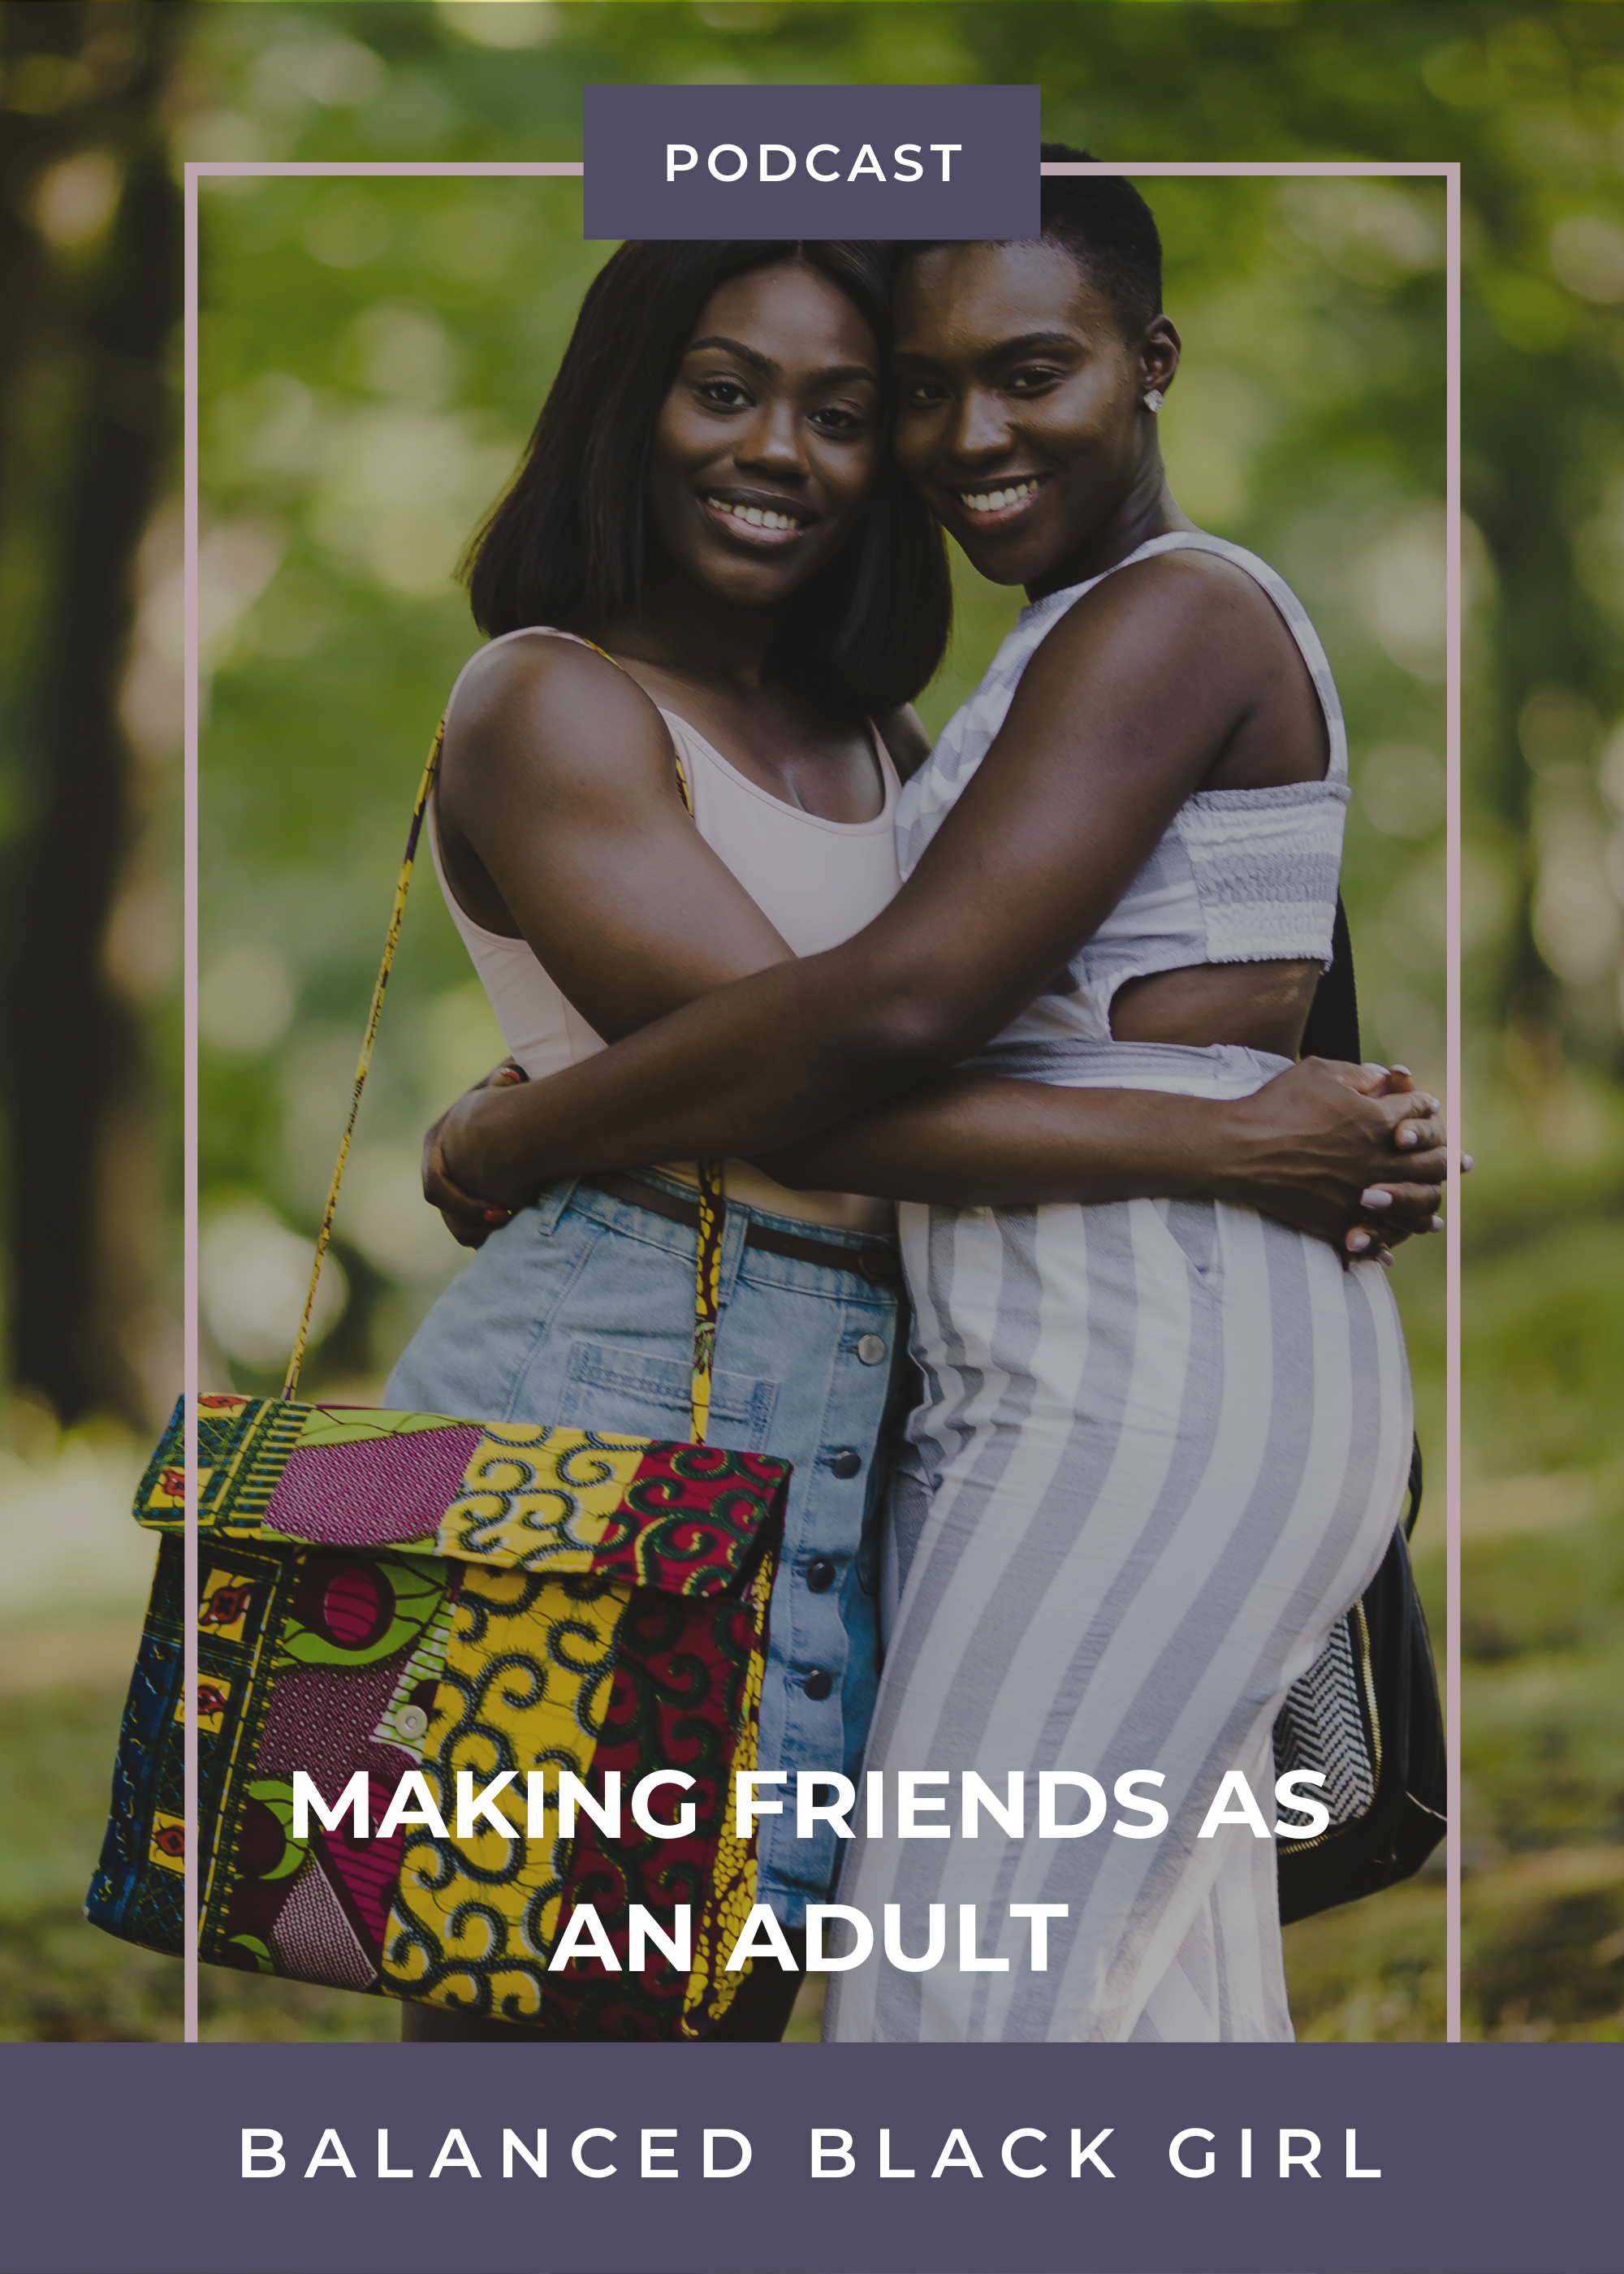 Feel Good Friday #19: Making Friends As An Adult | Balanced Black Girl Podcast